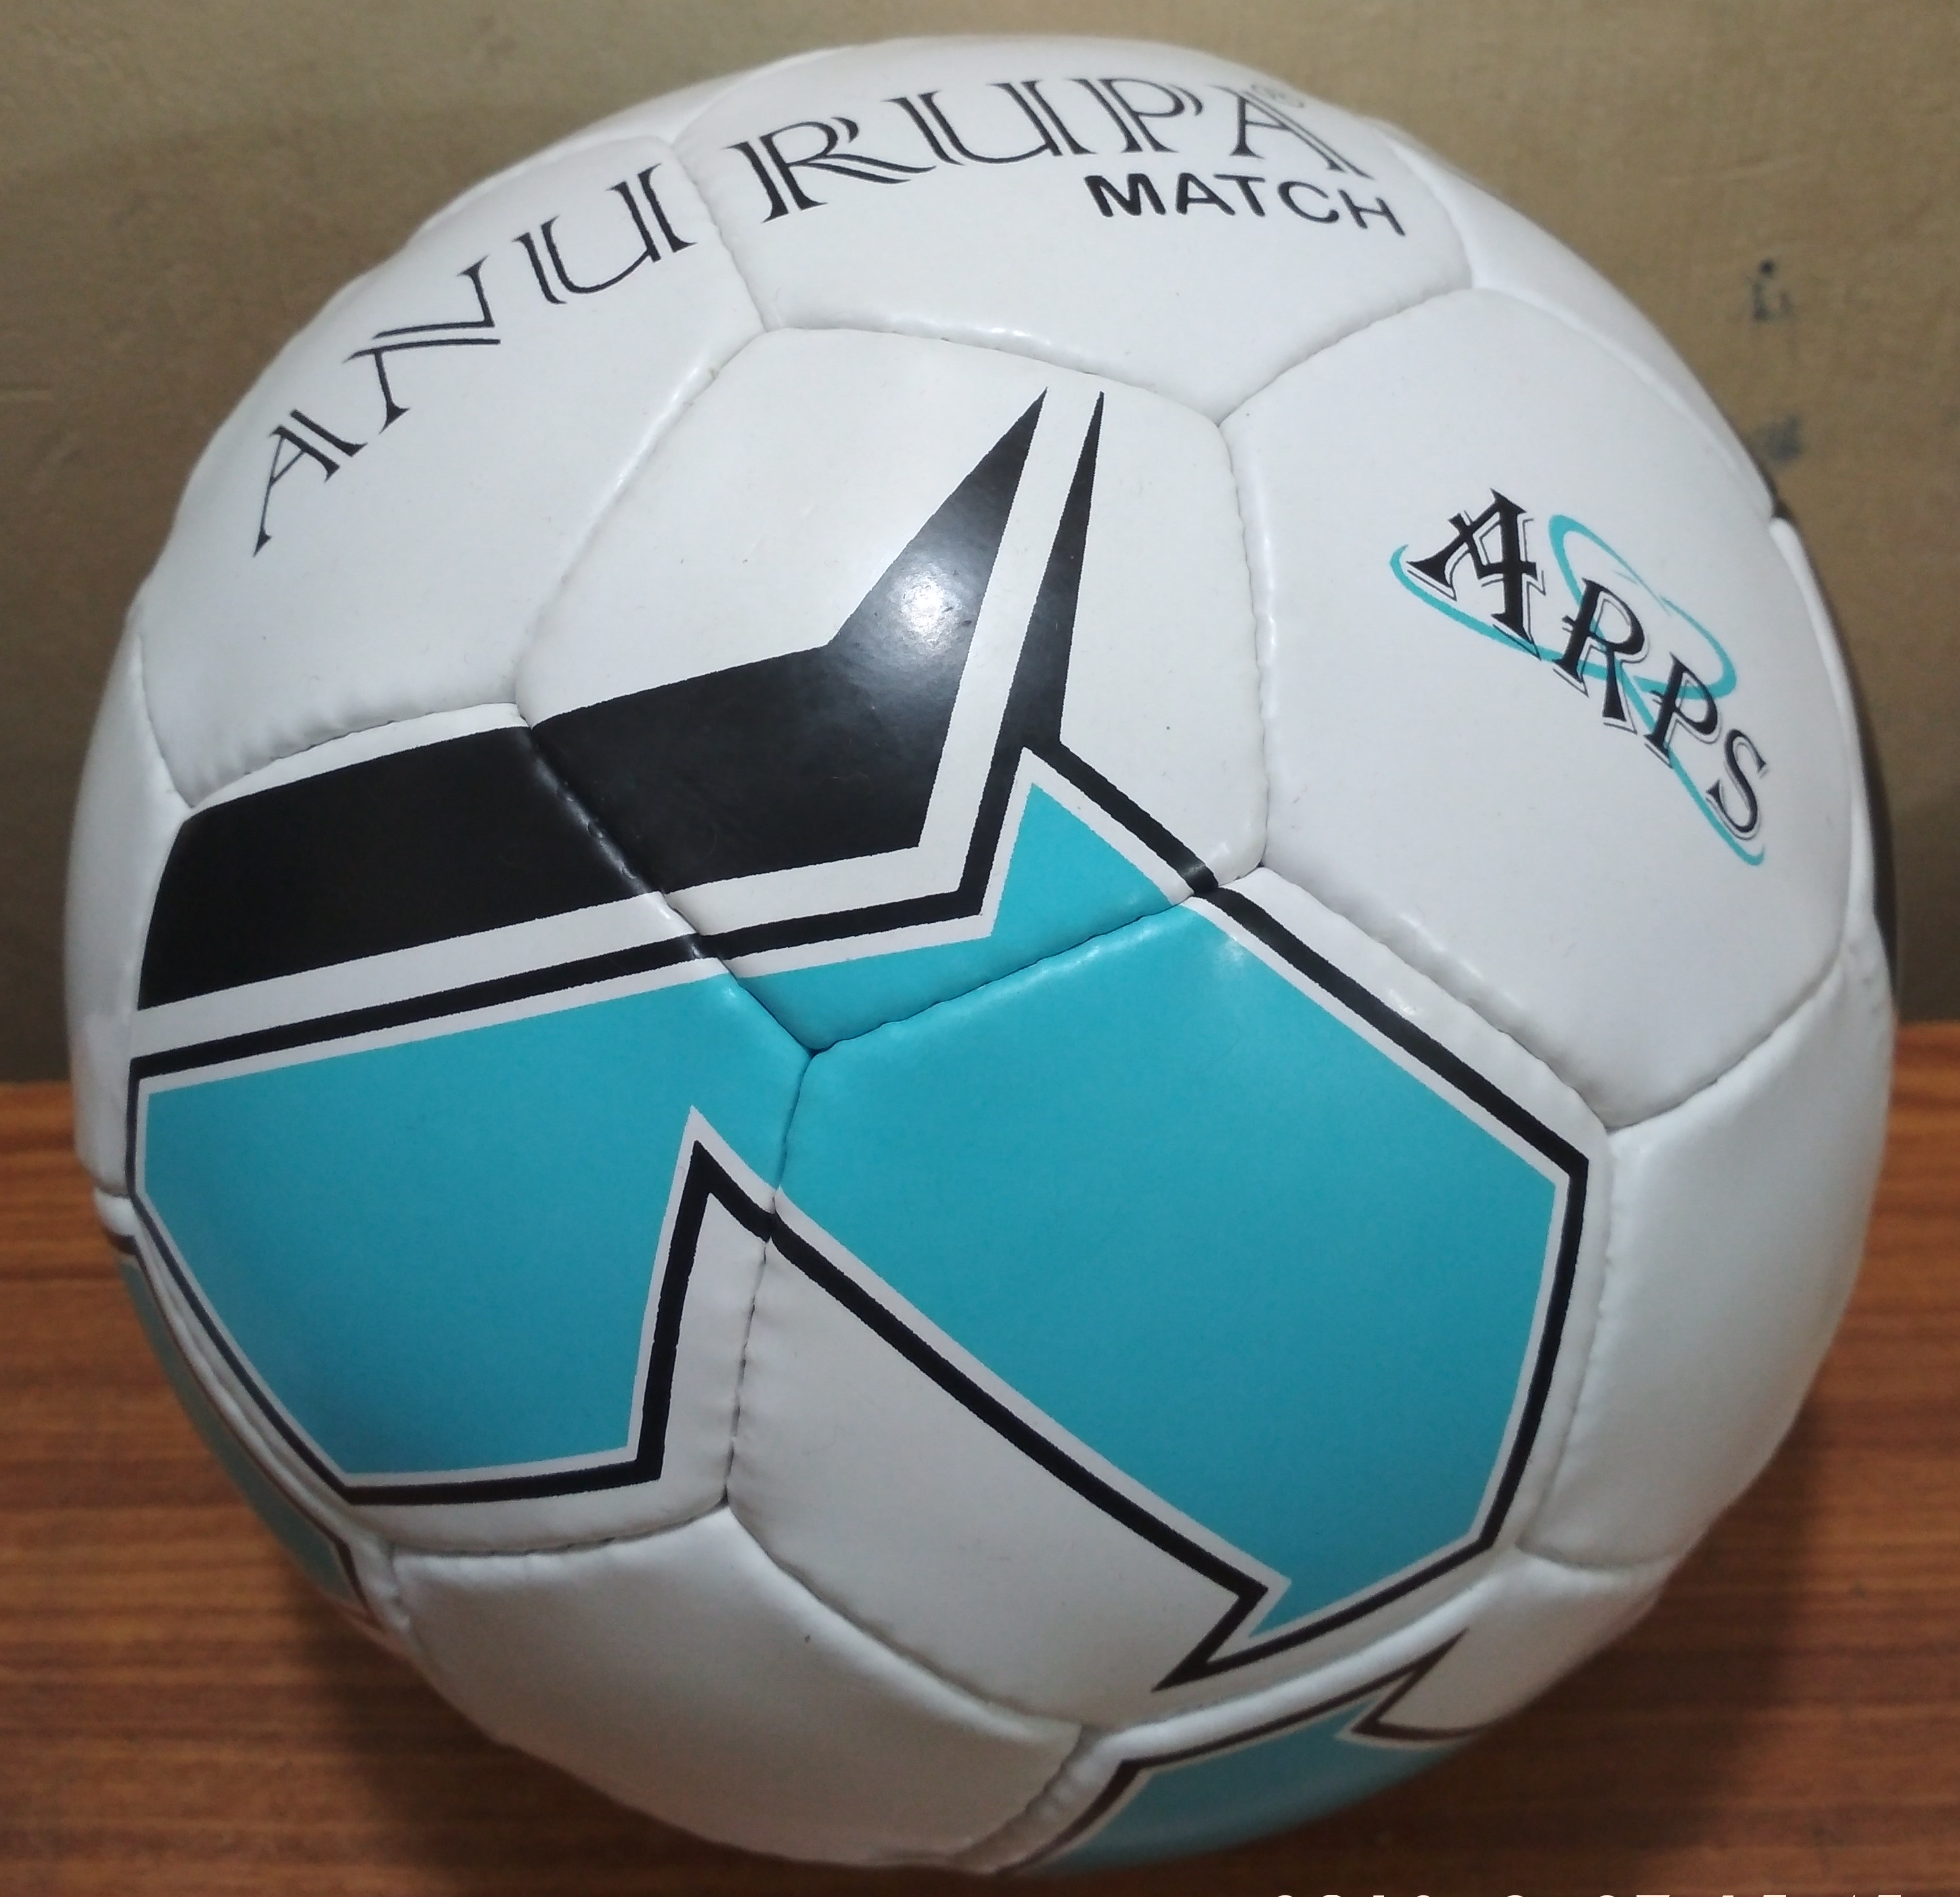 Foot Ball Anurupa Match Size-5